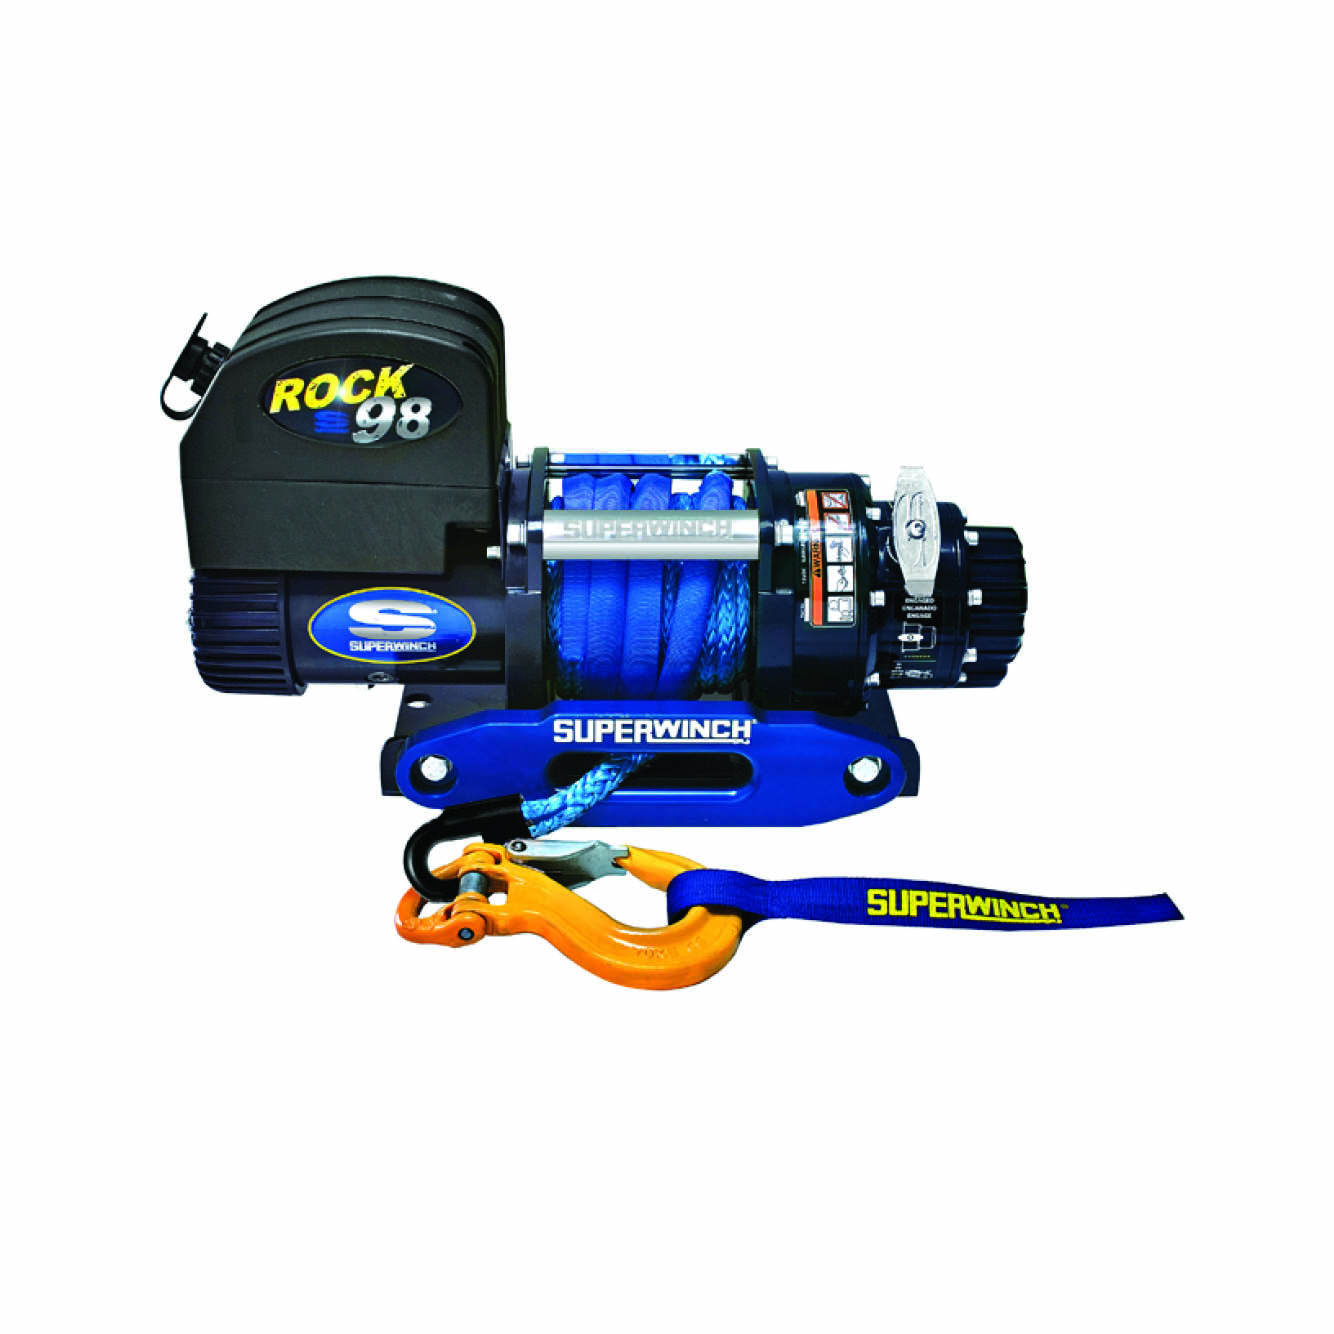 Superwinch Talon Rock 98